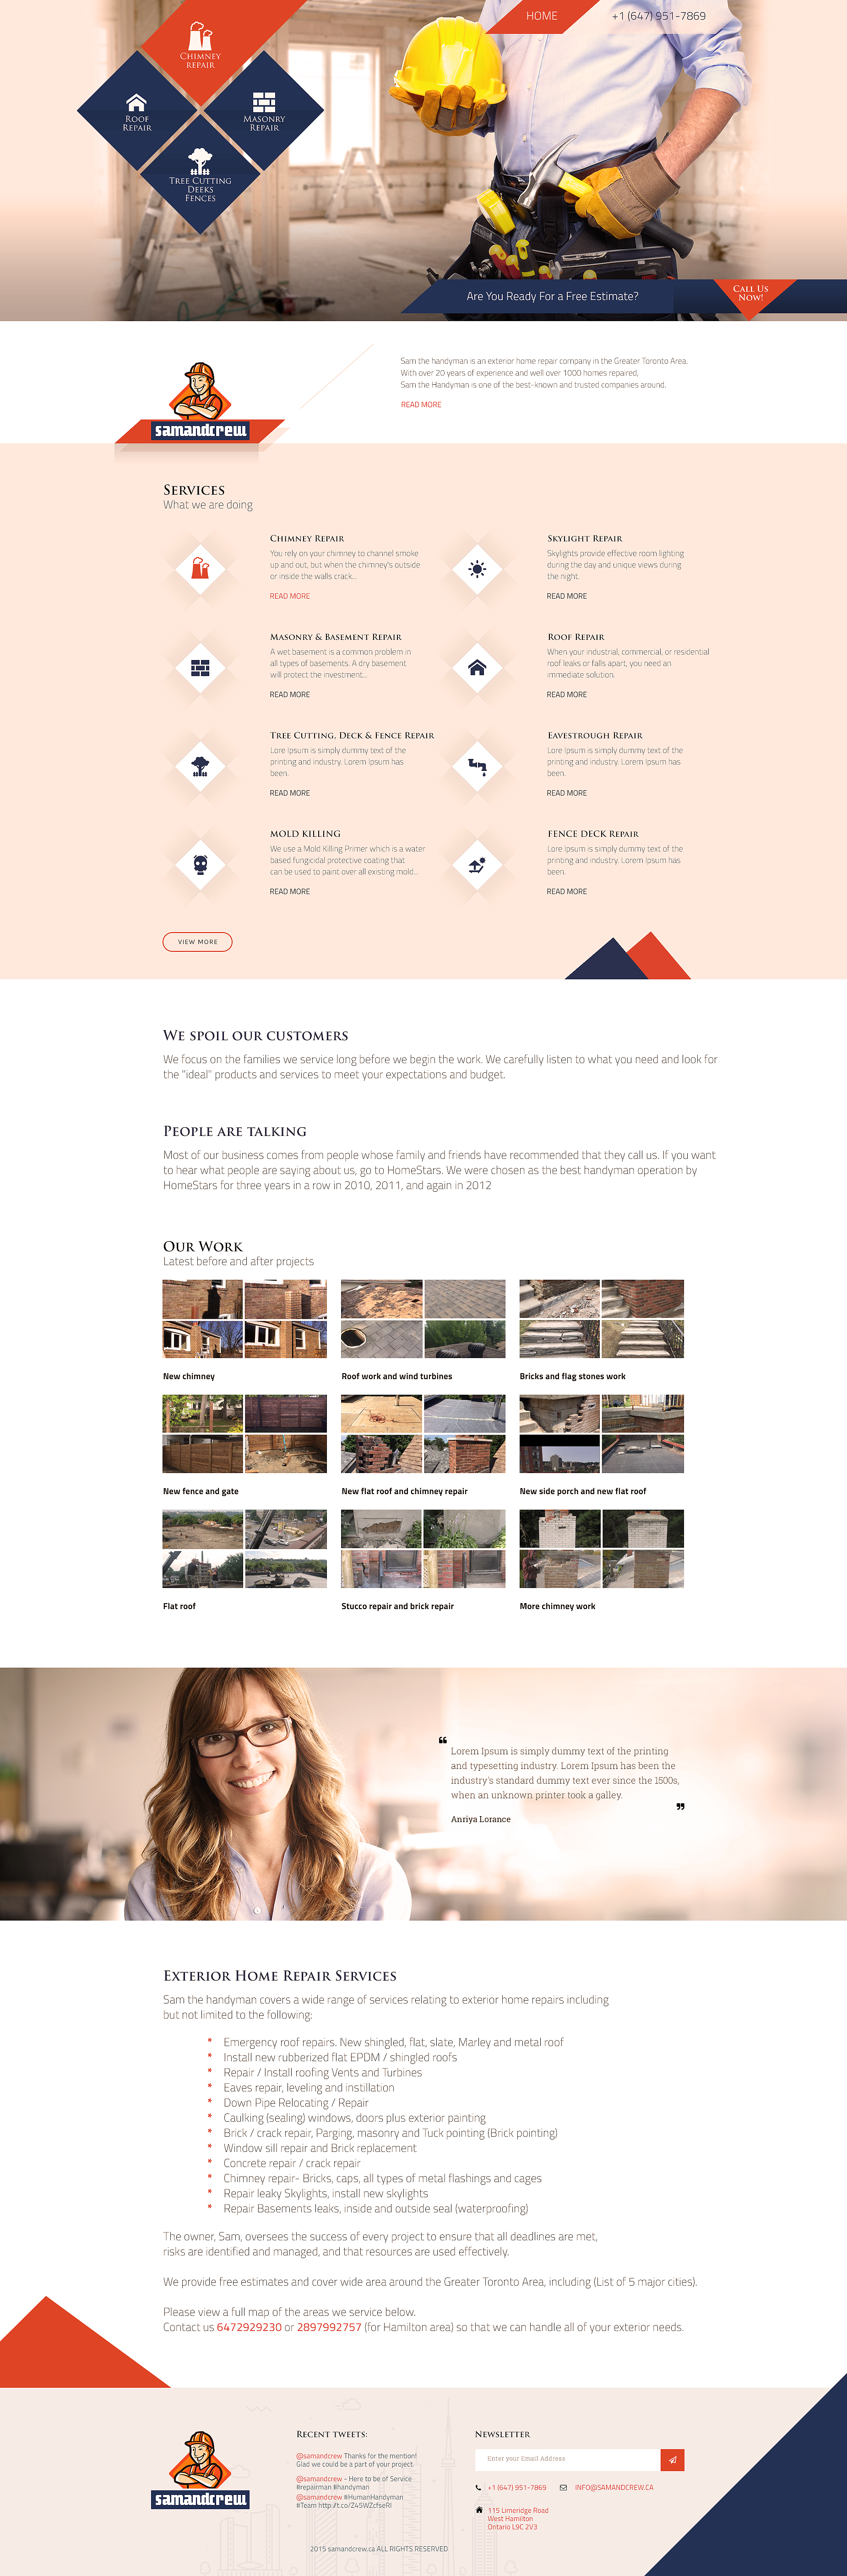 Construction Web Design Roofing Mockup Canada Best It Firm Awesome Are You Looking For A Web De Web Design Online Marketing Services Custom Website